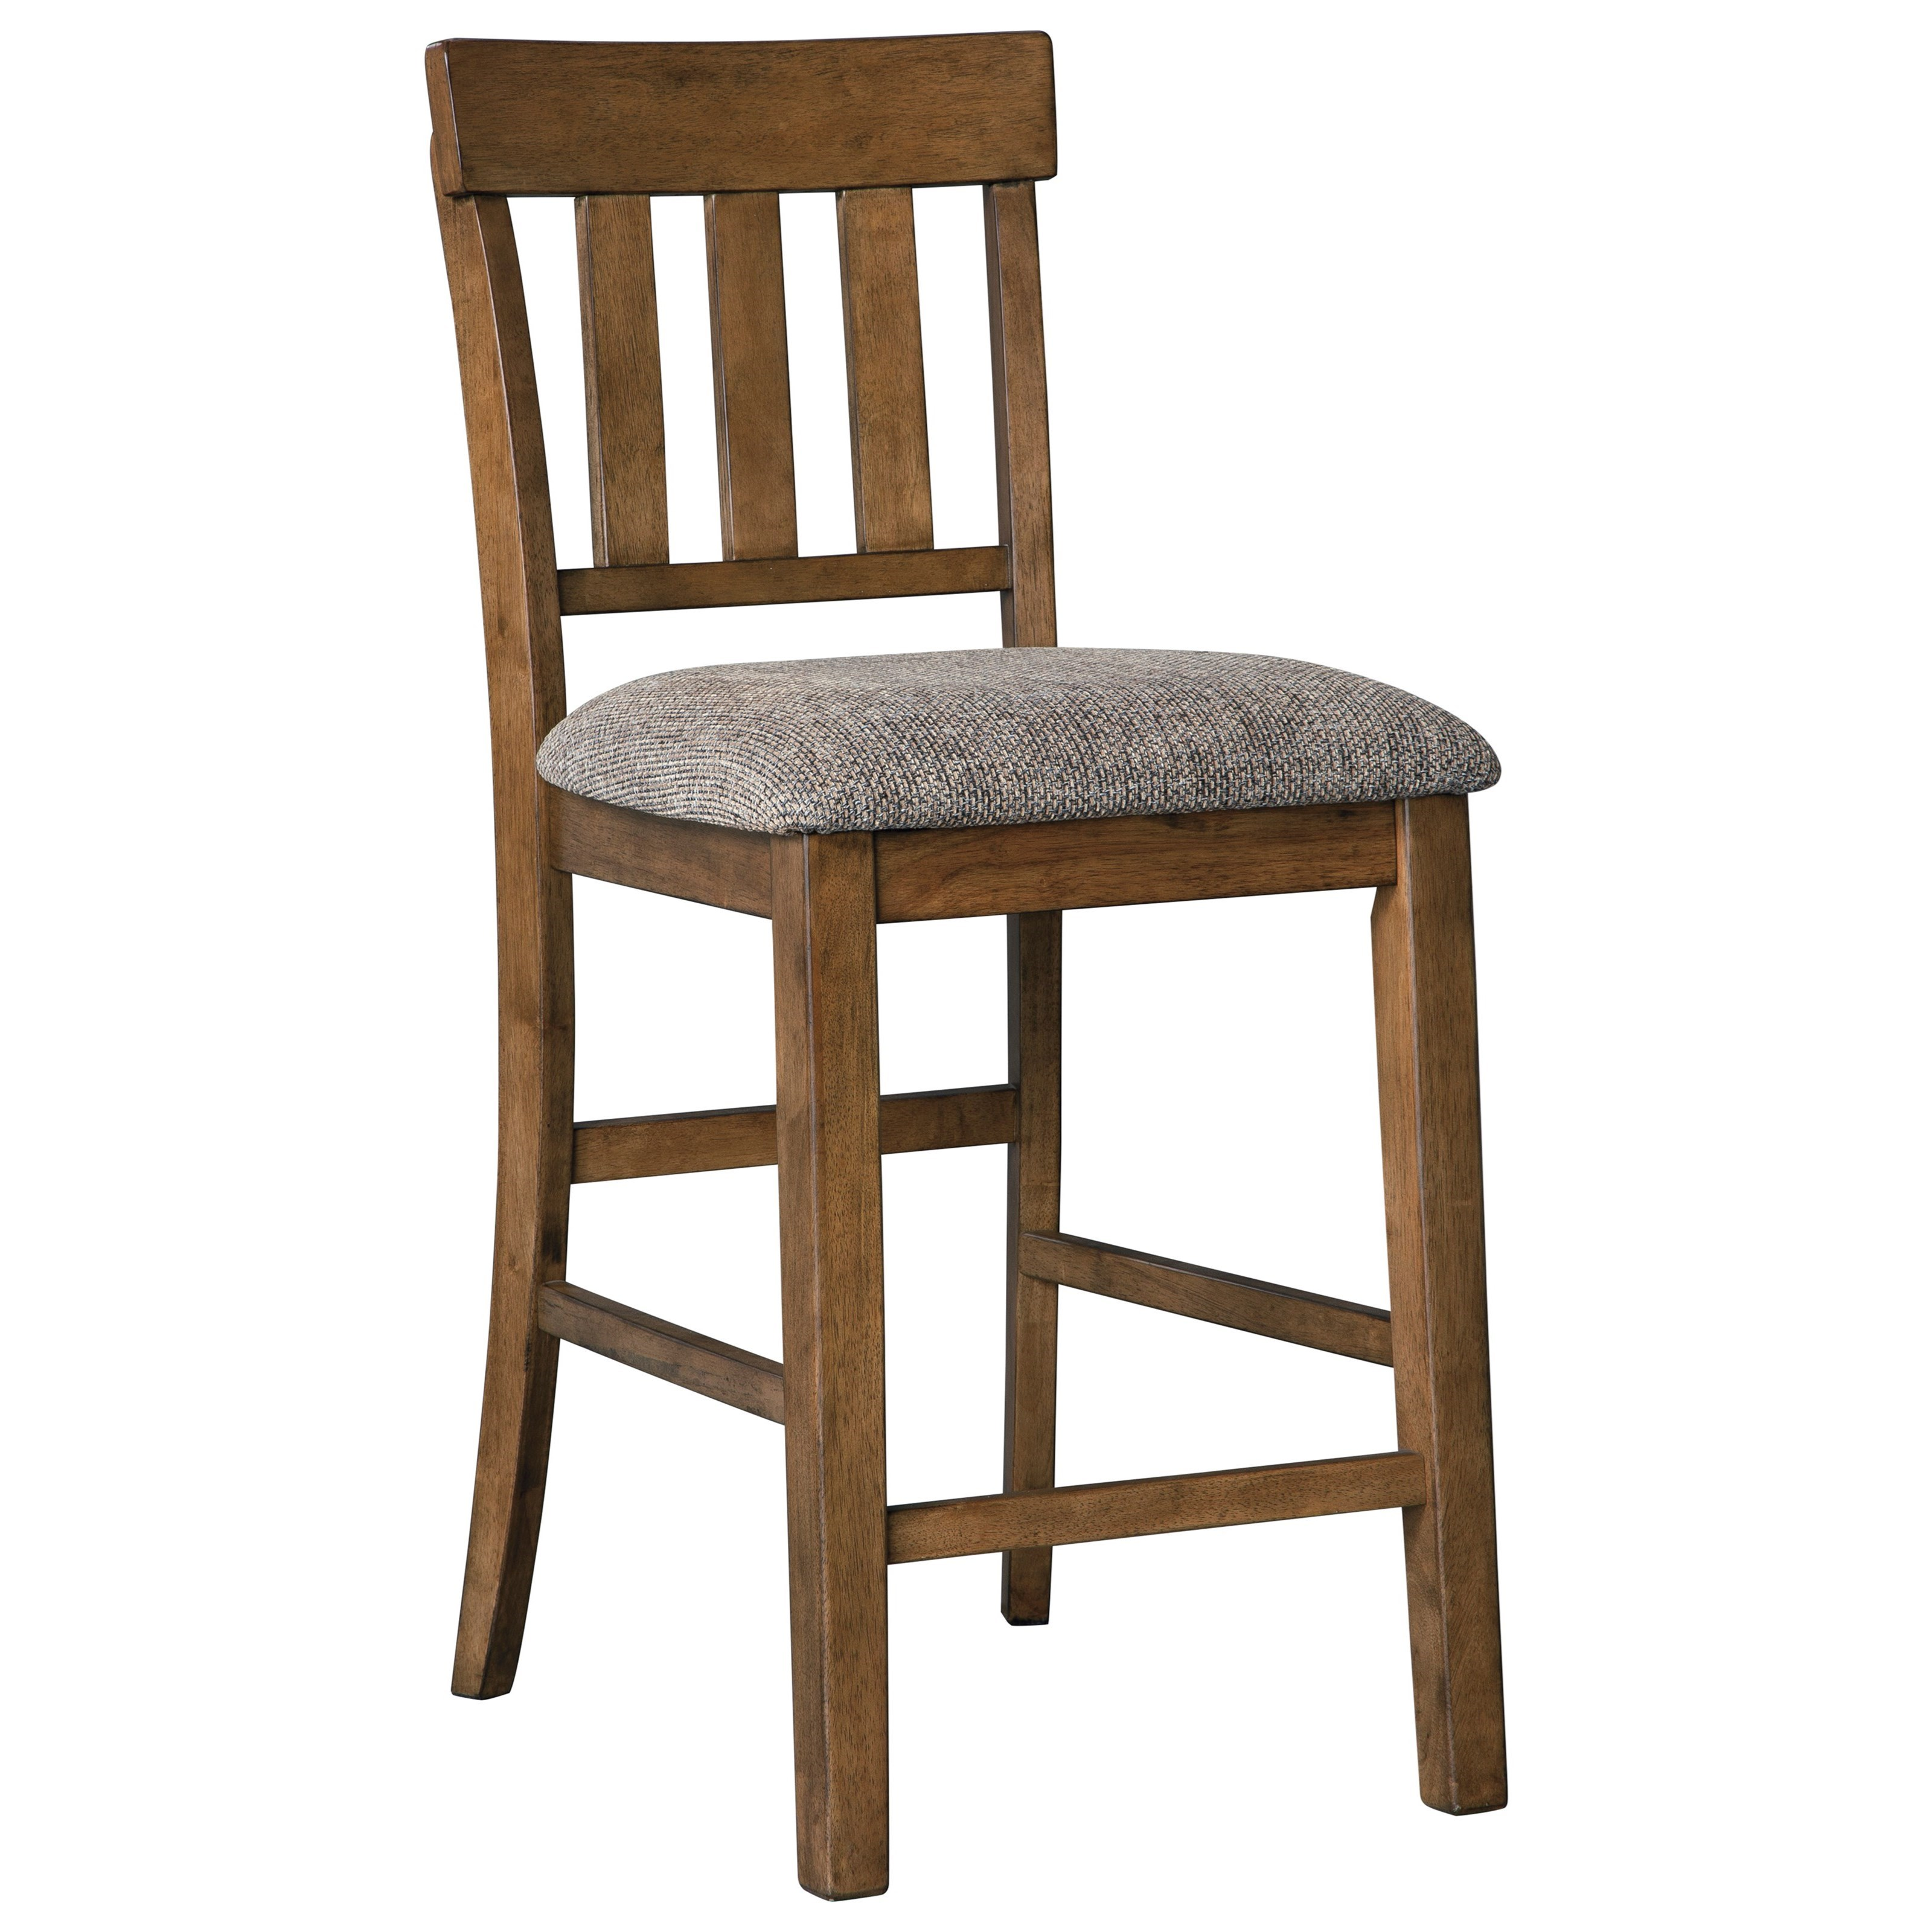 Flaybern Upholstered Barstool by Benchcraft at Walker's Furniture